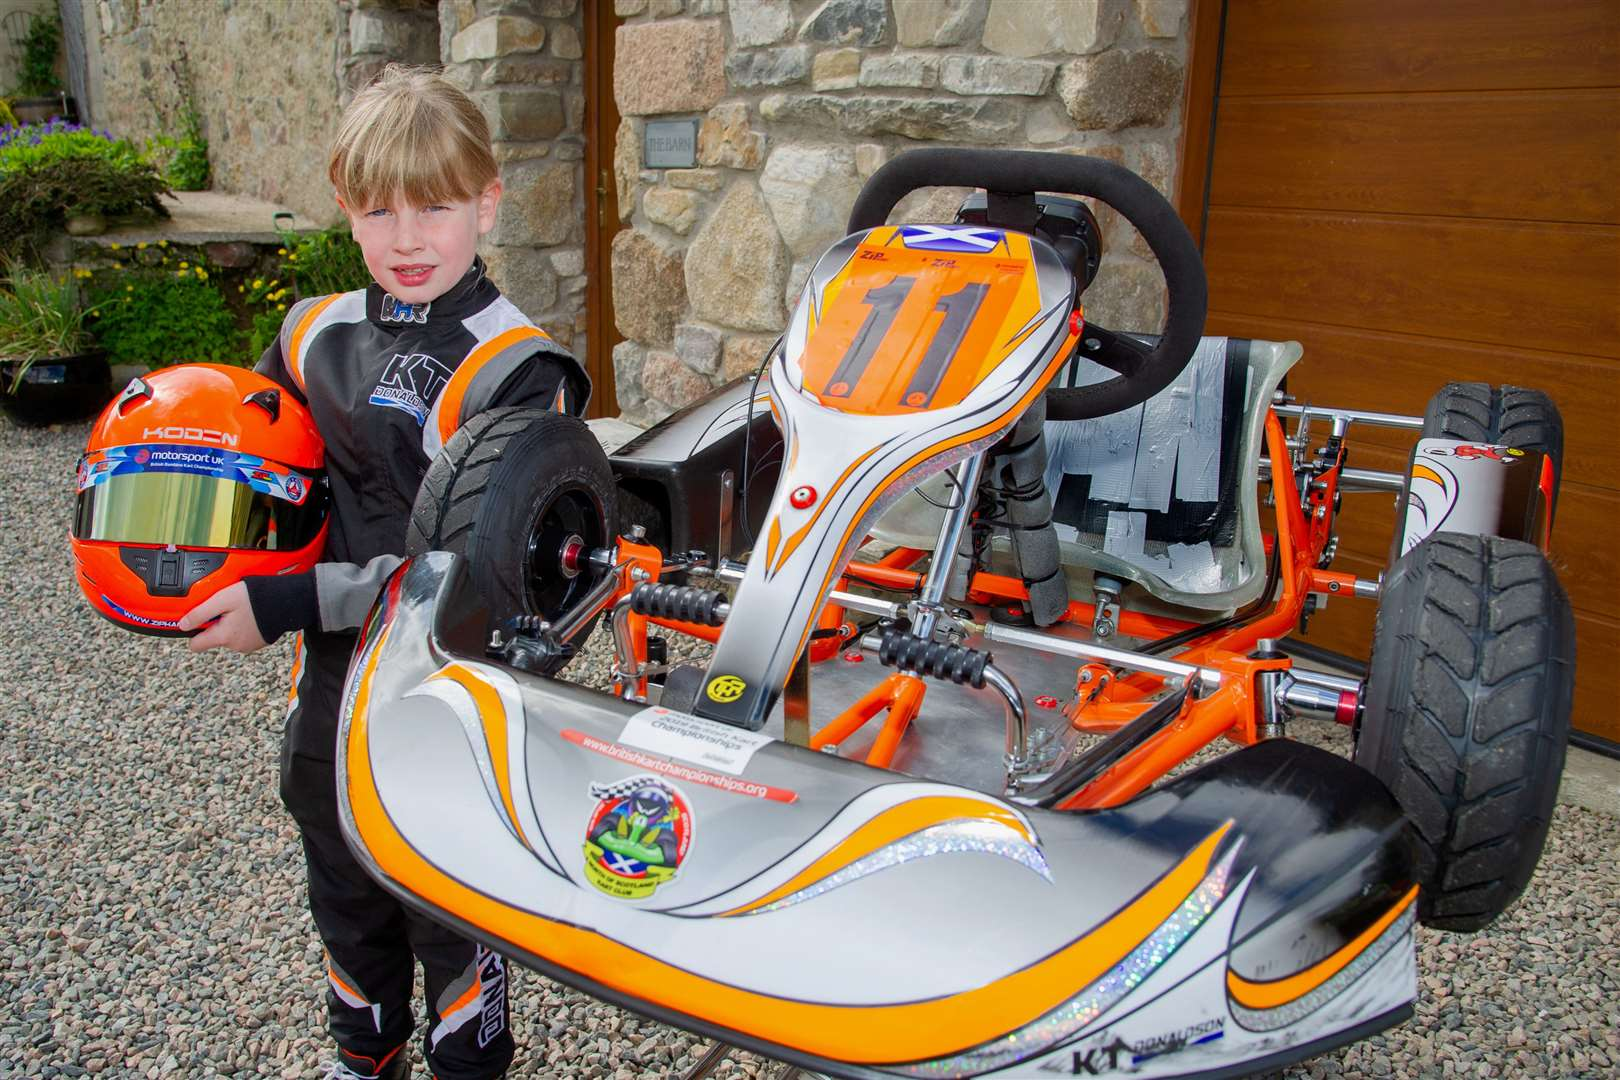 Go Kart ace Katie Donaldson has been chosen to be a 'Grid Kid' at the upcoming British Grand Prix.